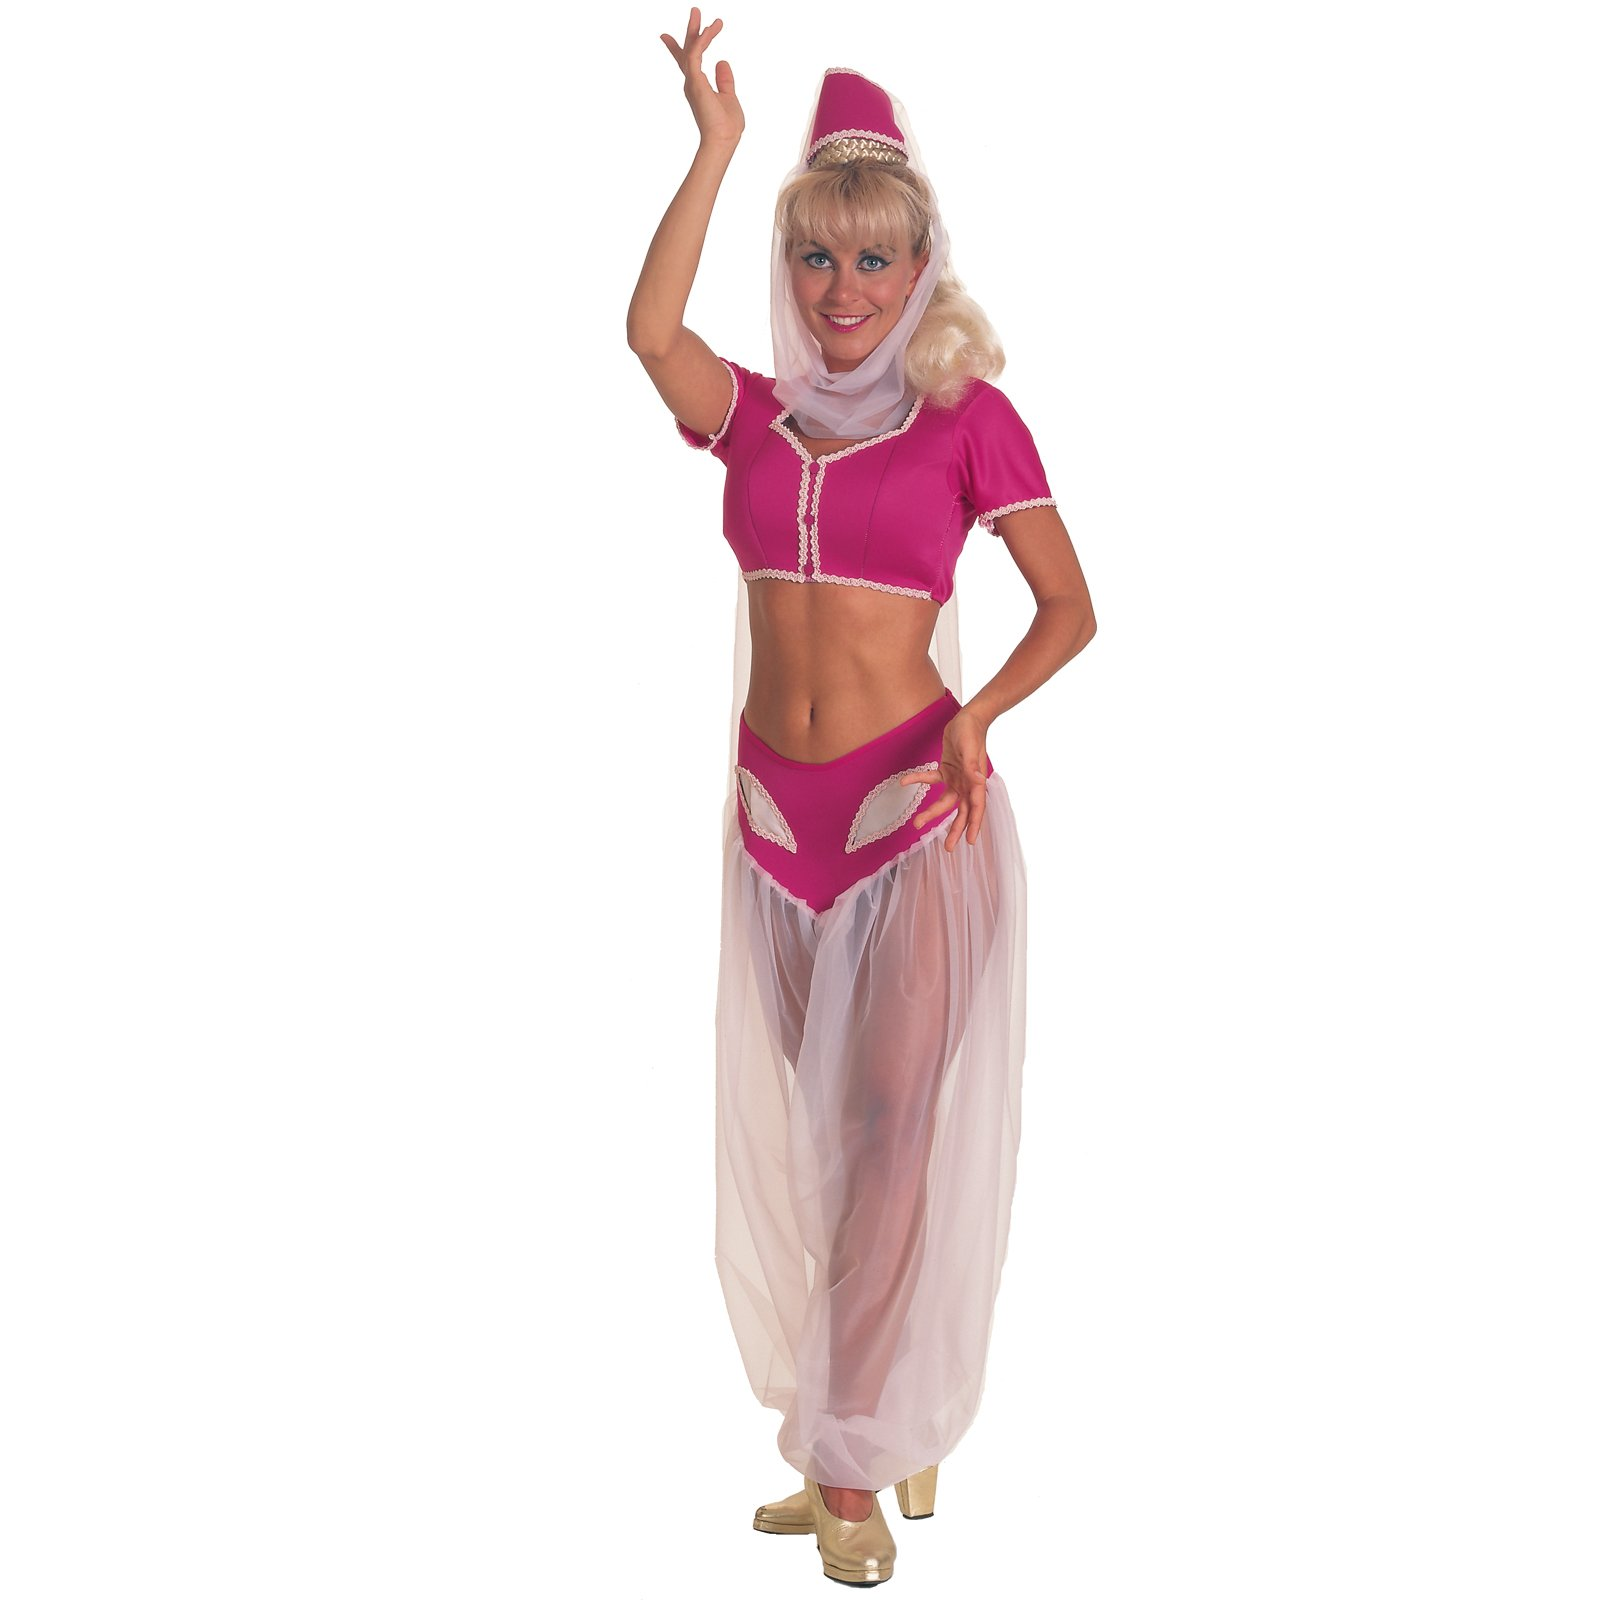 I Dream of Jeannie Adult Halloween Costume - One Size Up to 12